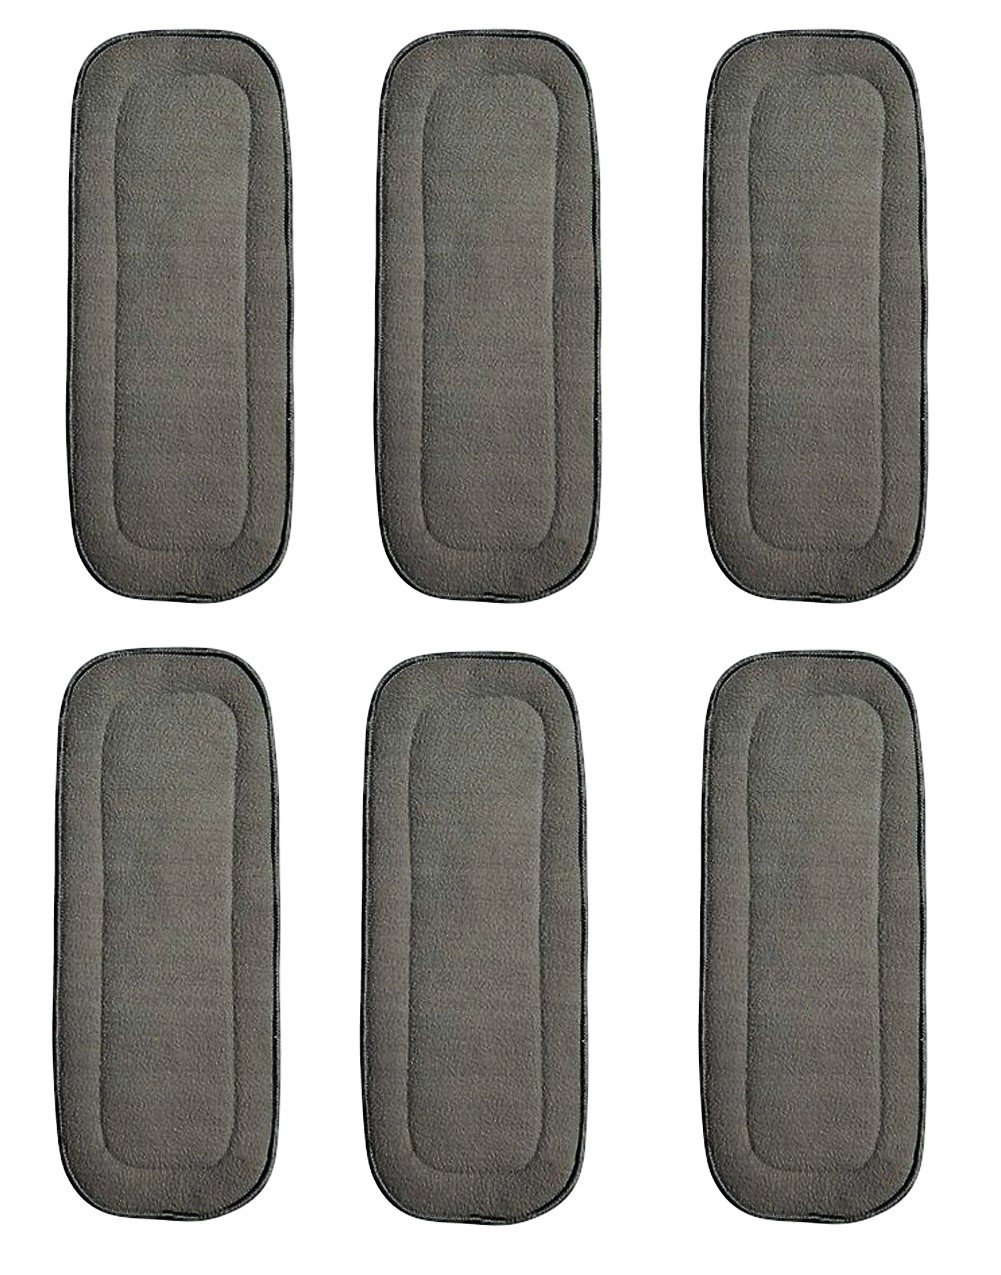 6 Pack Bamboo Charcoal Inserts 5 Layers for Cloth Diapers Washable Large 14 X 5 See Diapers